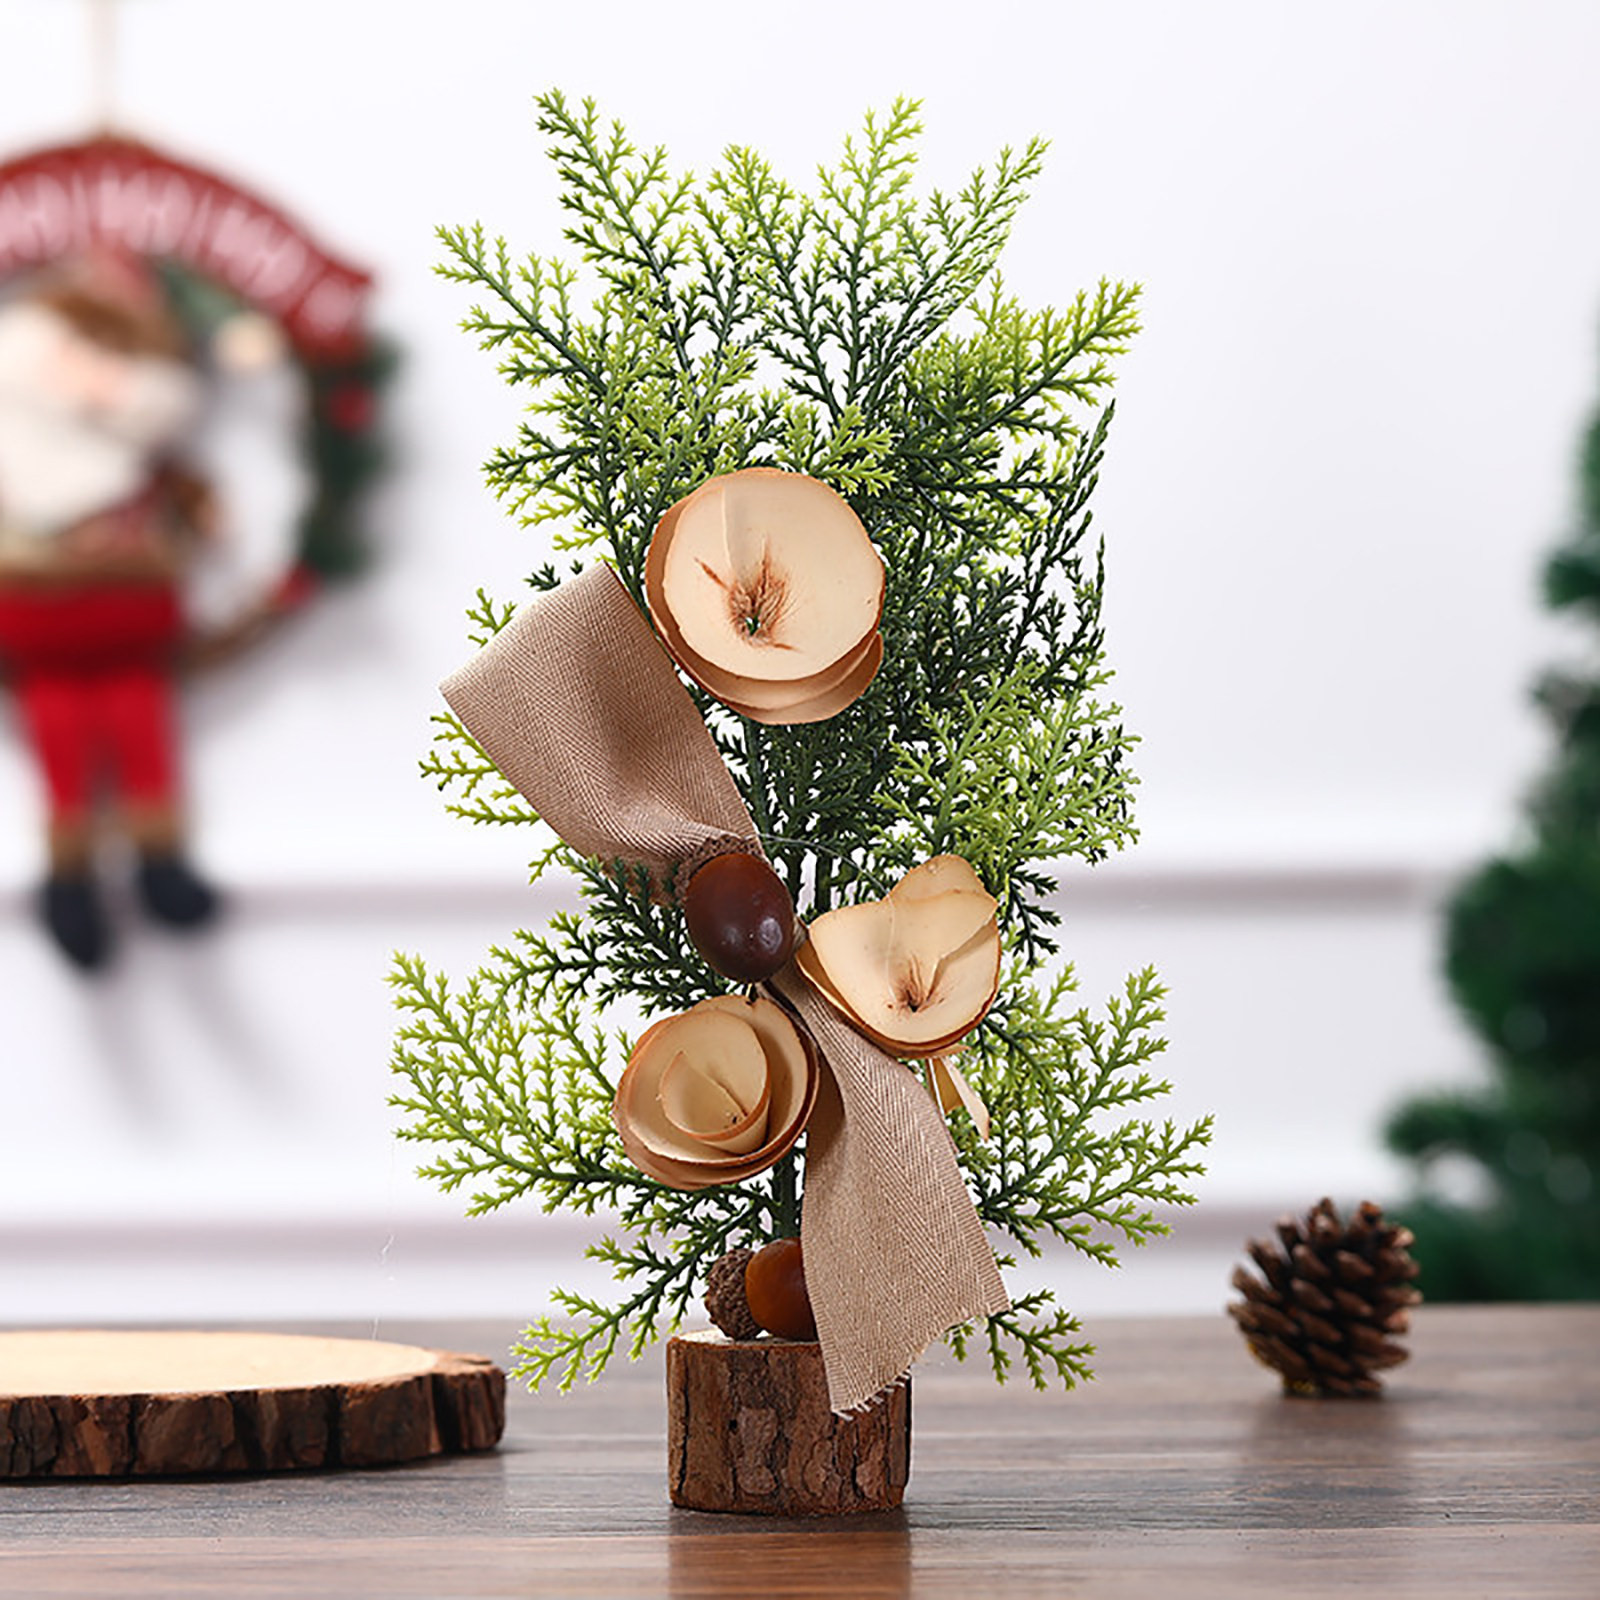 Window Mini Christmas Tree Gifts Christmas Desktop Small Christmas Tree Ornament Buy Online At Best Prices In Myanmar Shop Com Mm